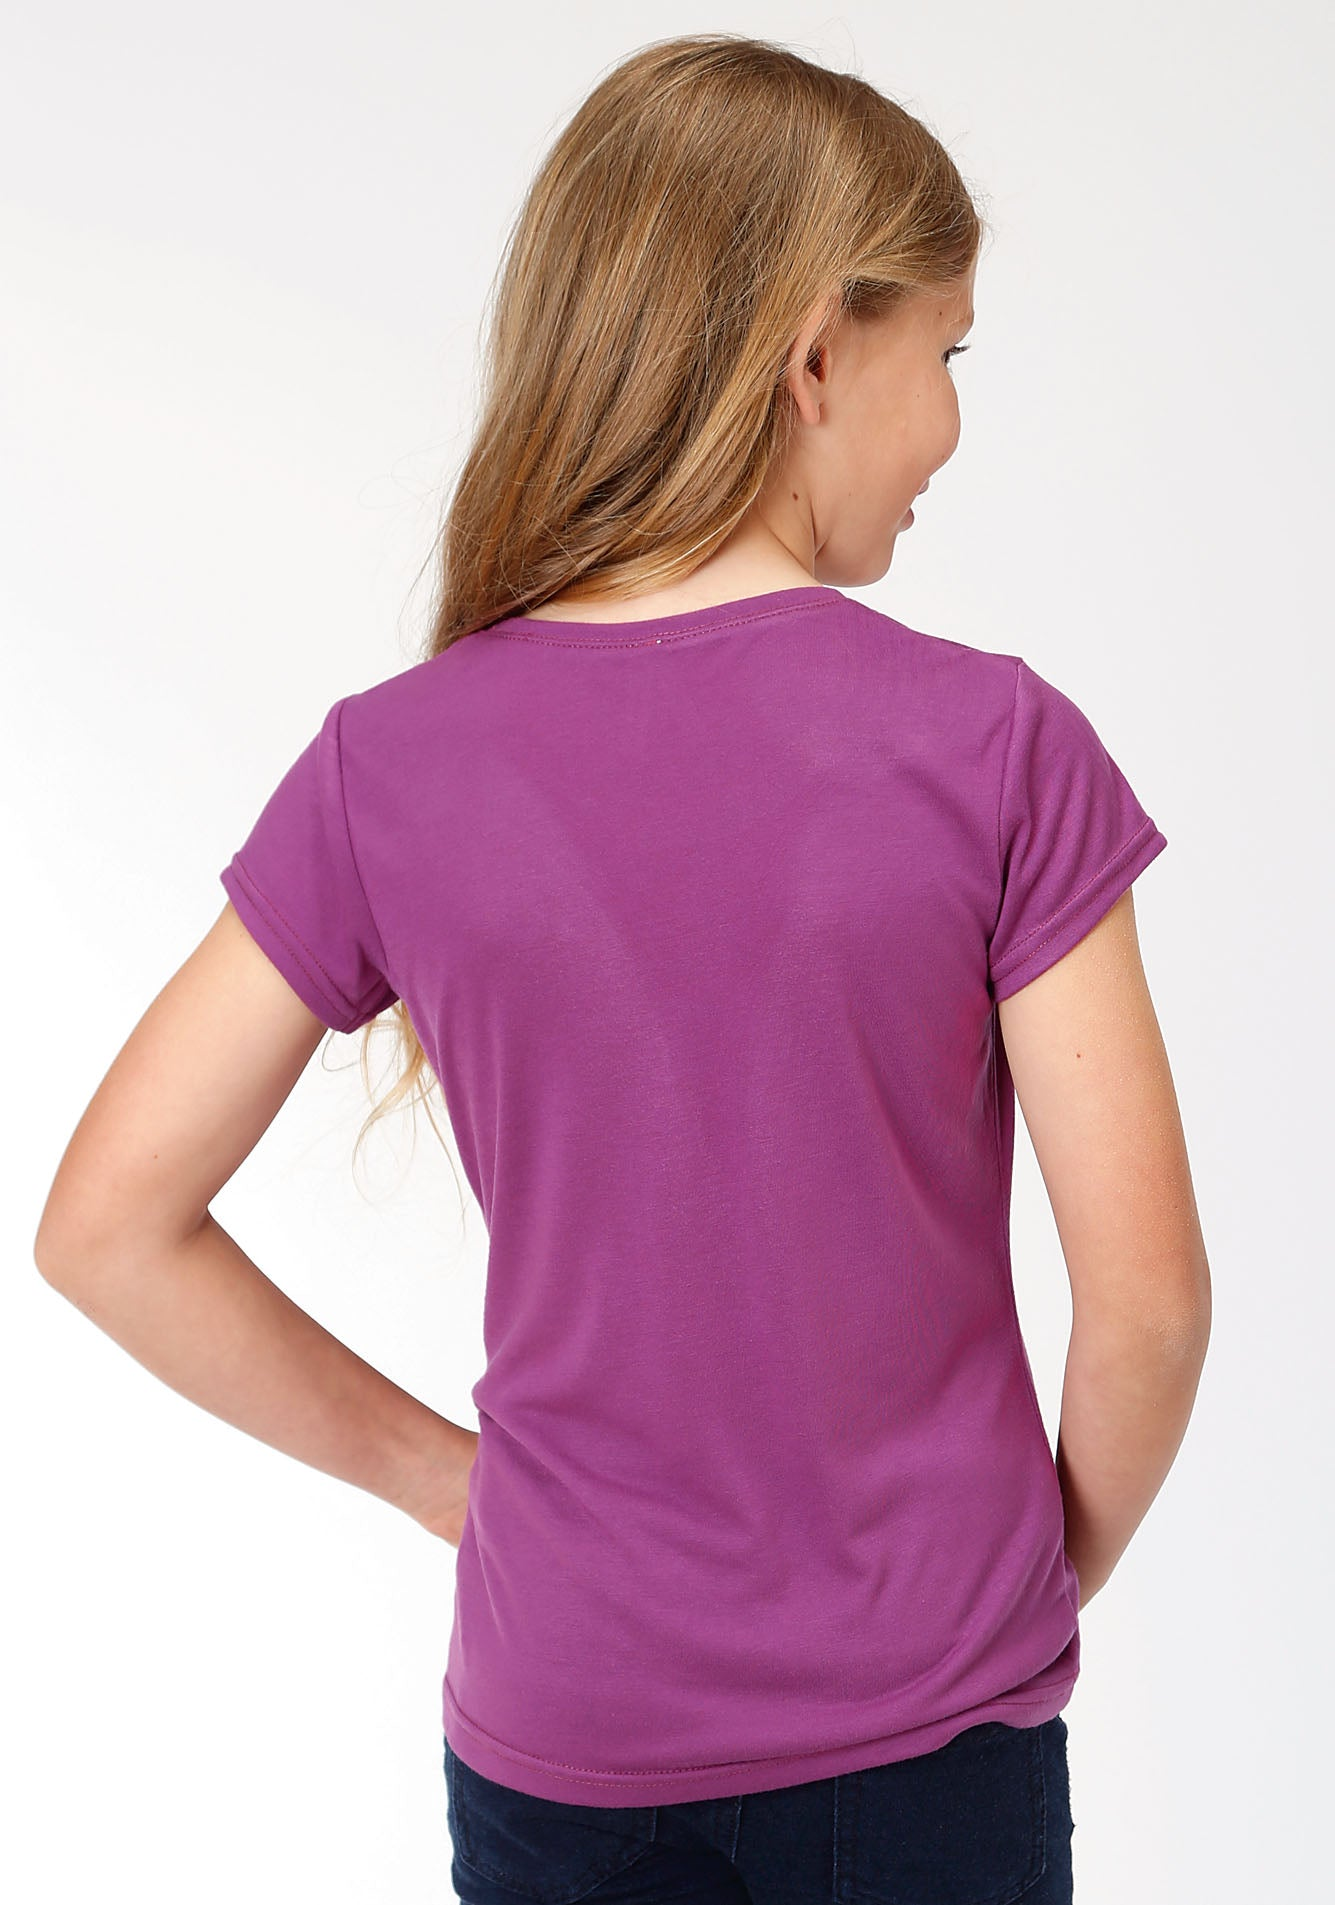 ROPER GIRLS PURPLE 00134 POLY RAYON JERSEY TEE FIVE STAR GIRLS SHORT SLEEVE